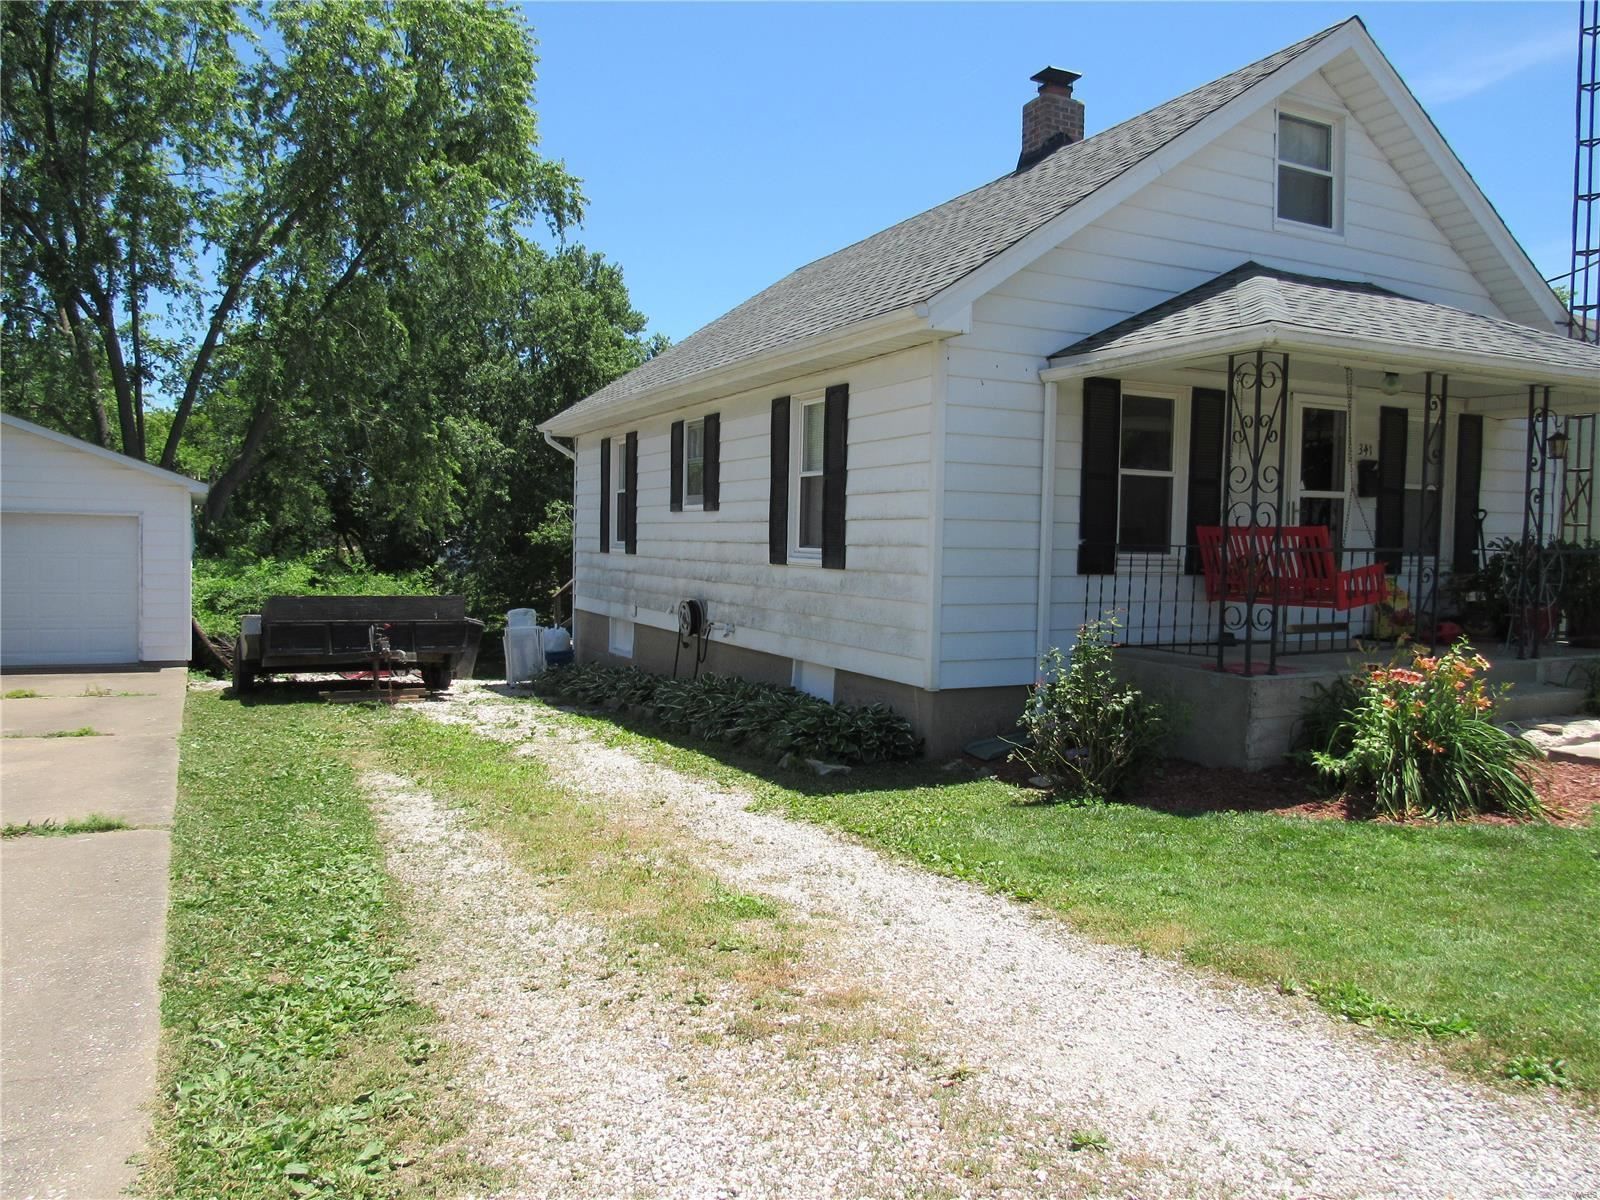 Photo of 341 North Waters, Perryville, MO 63775 (MLS # 21043853)